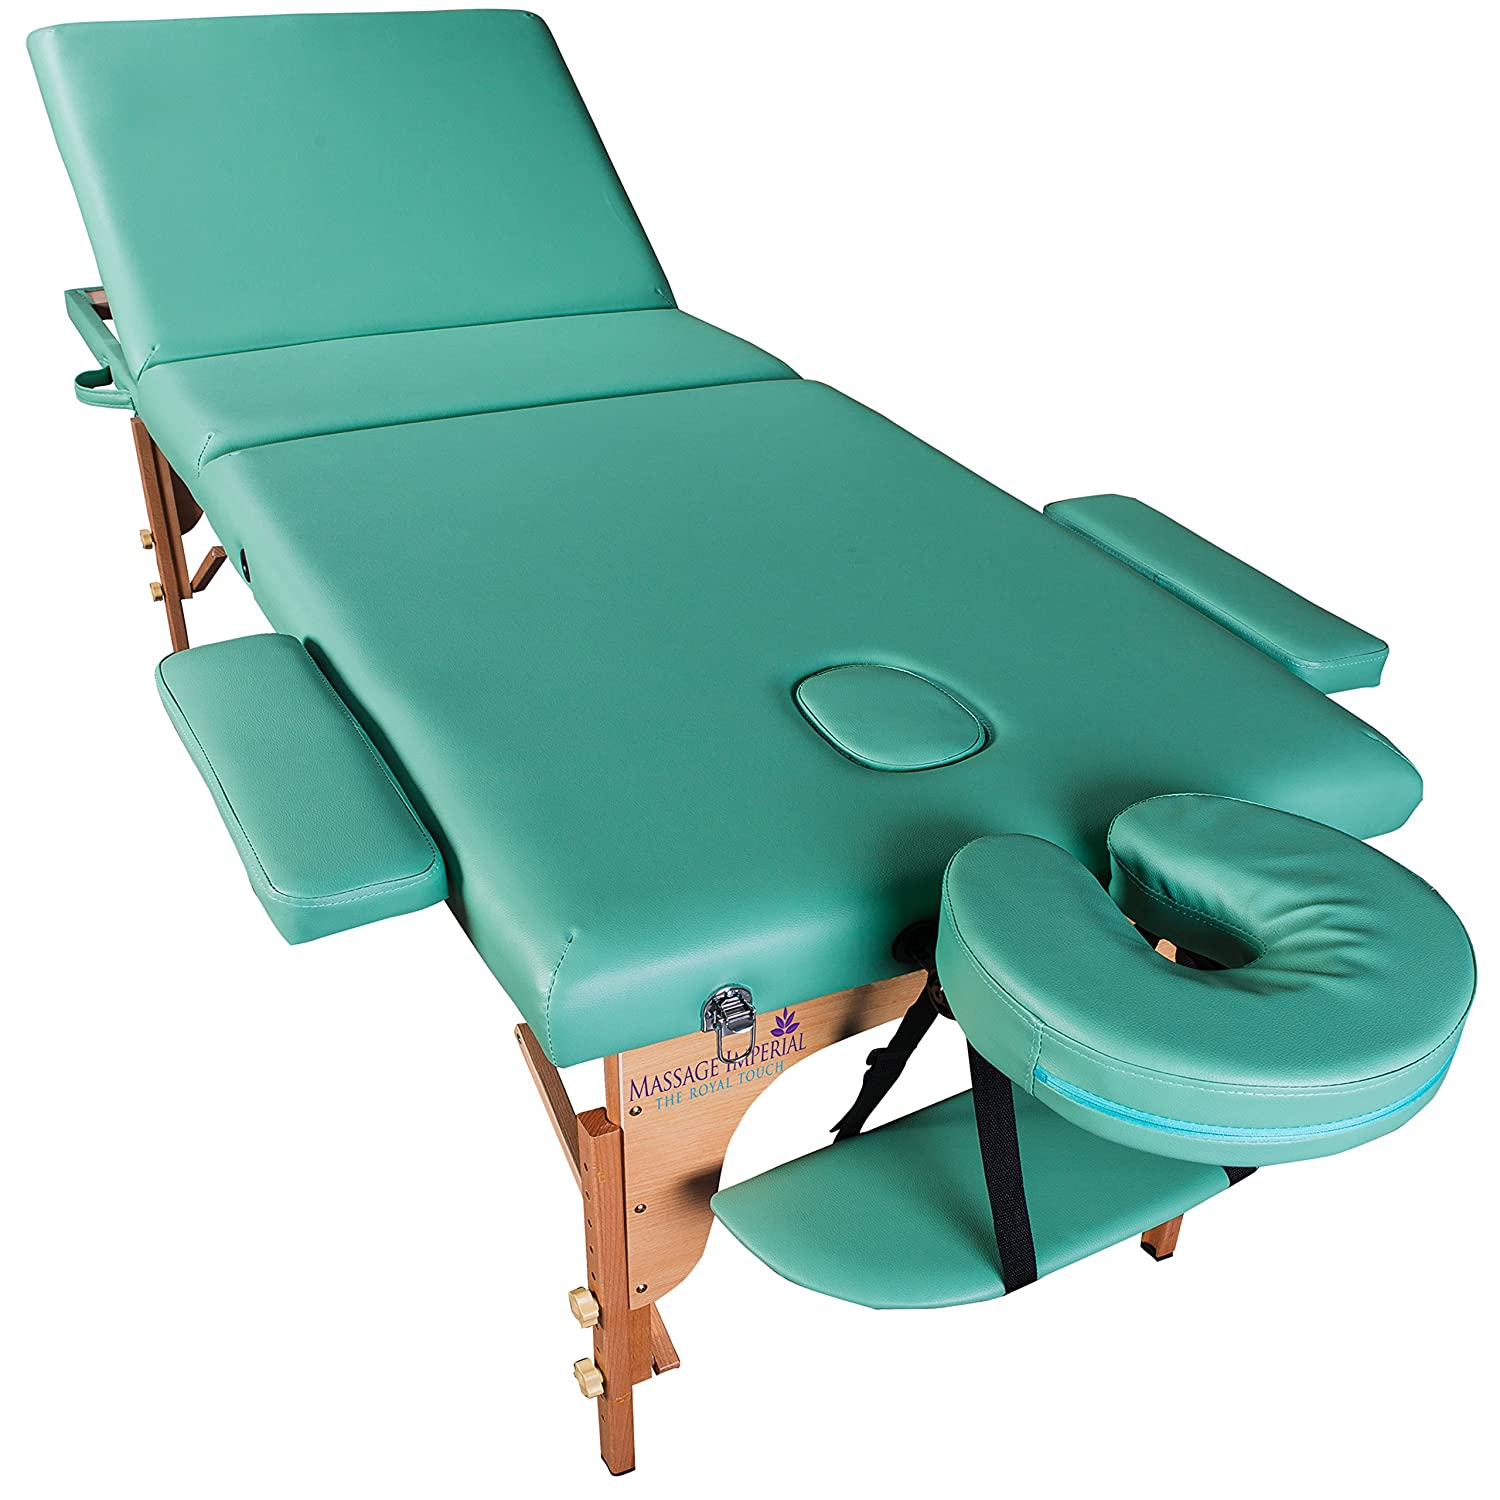 Lightweight portable massage table - Massage Imperial Lightweight Professional Light Green 3 Section Portable Massage Table Couch Bed Spa Amazon Co Uk Health Personal Care